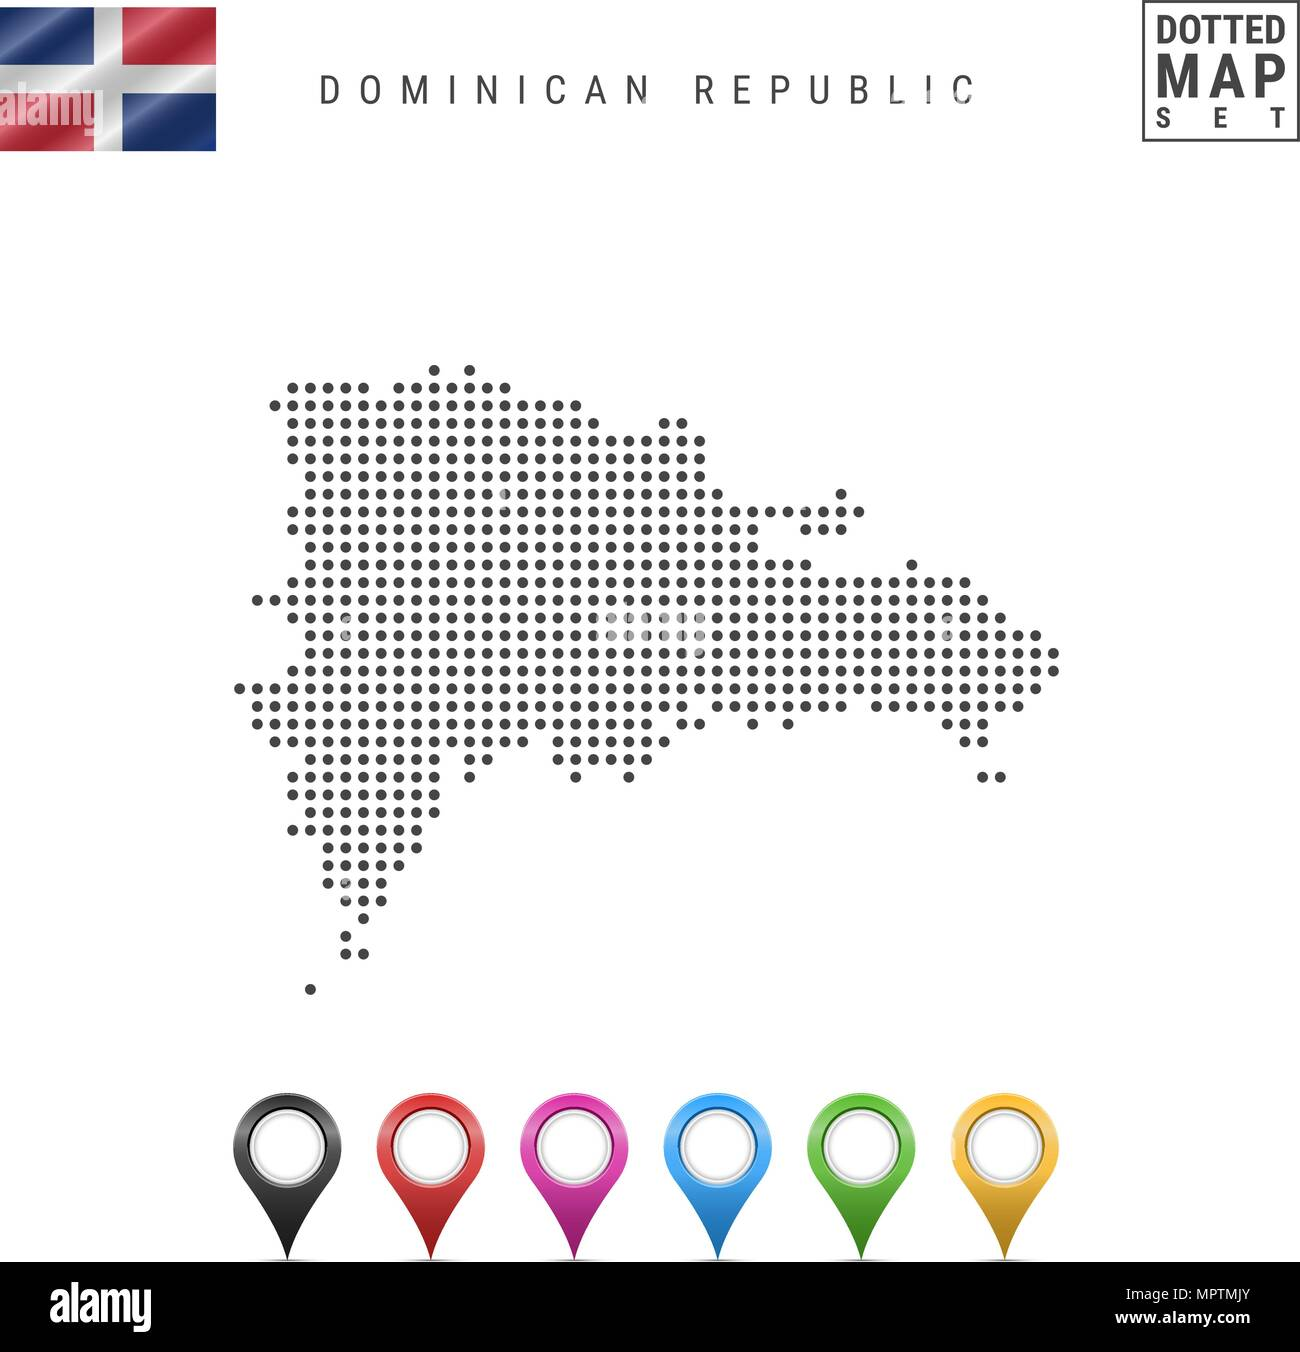 Vector Dotted Map of Dominican Republic. Silhouette of Dominican Republic. Flag of Dominican Republic. Map Markers Set Stock Vector